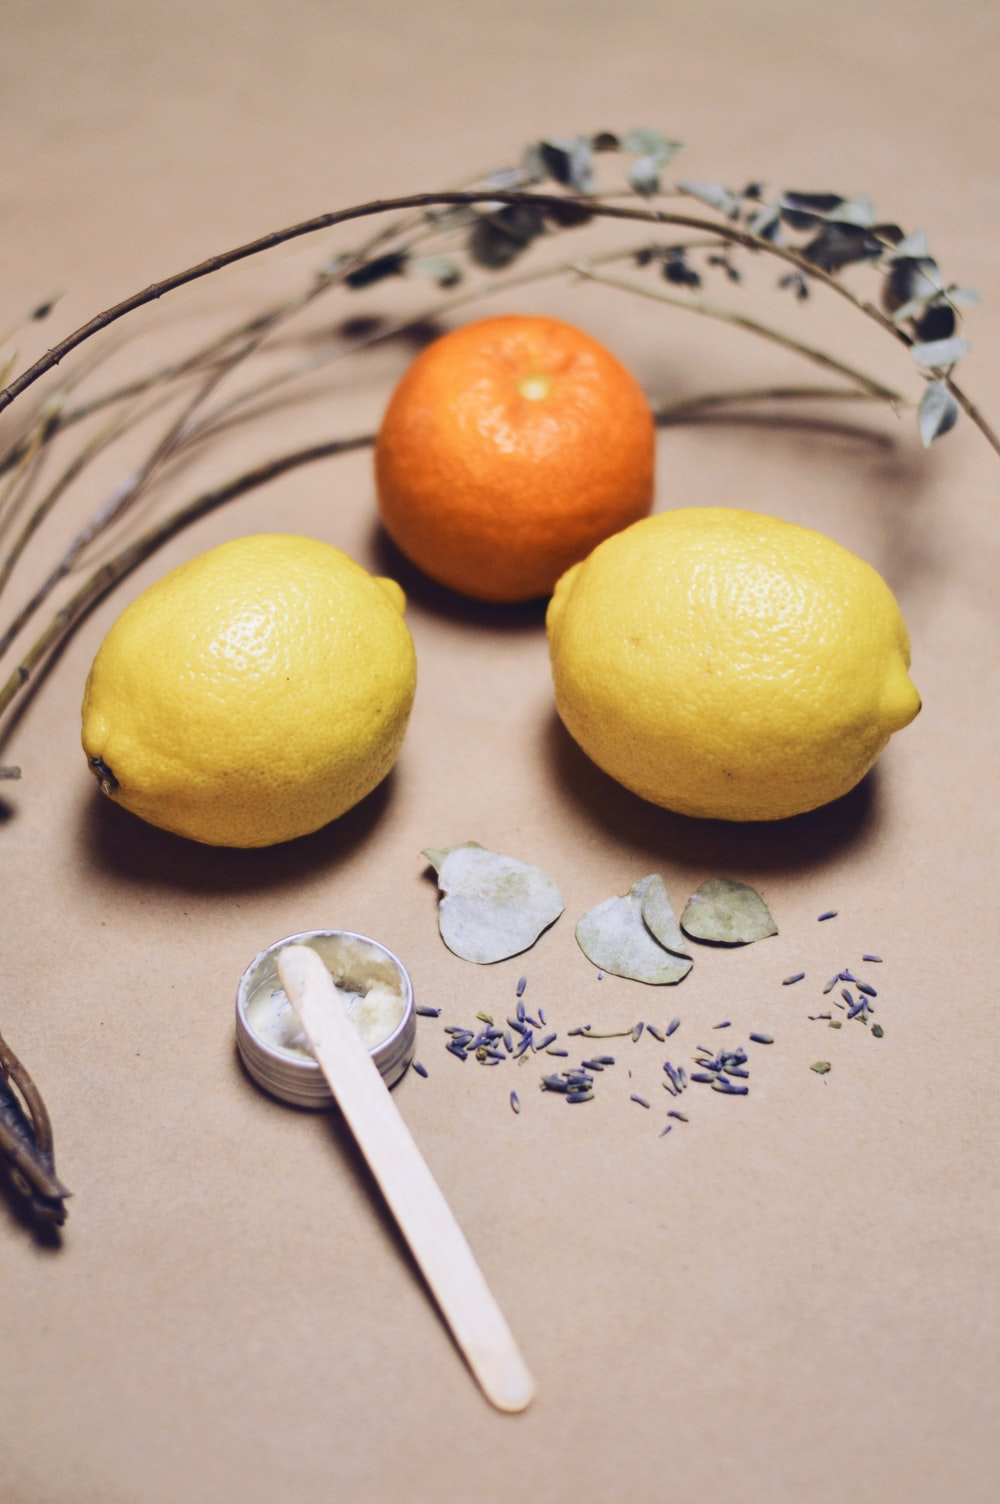 yellow lemon fruit beside silver fork on white and blue floral textile